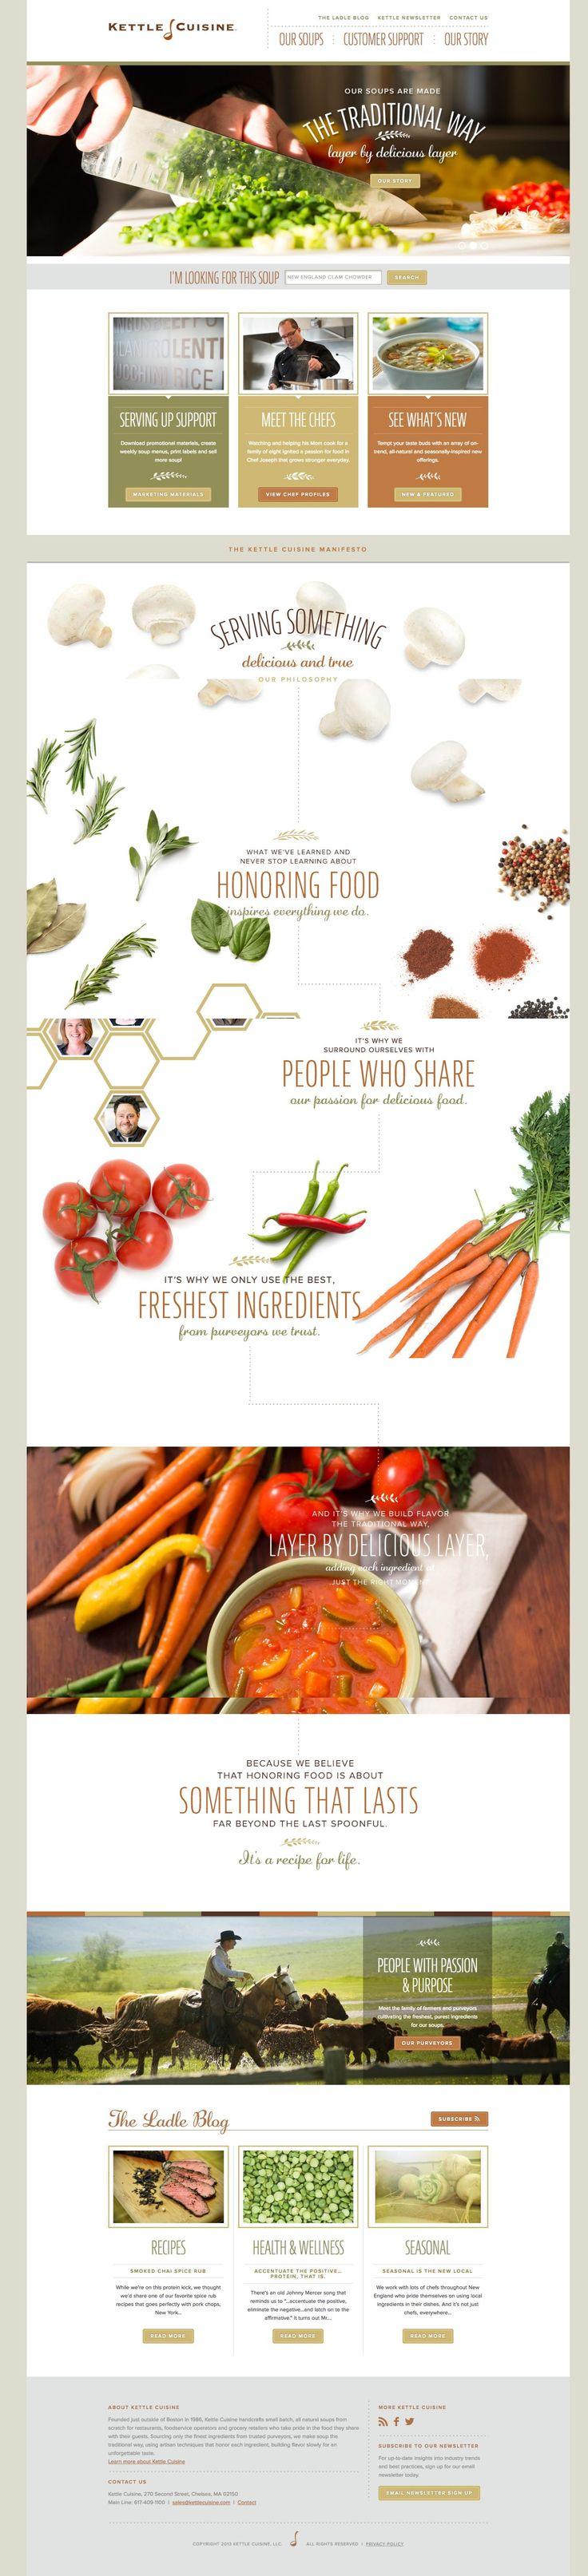 Kettle Cuisine - neat layout with attractive visuals